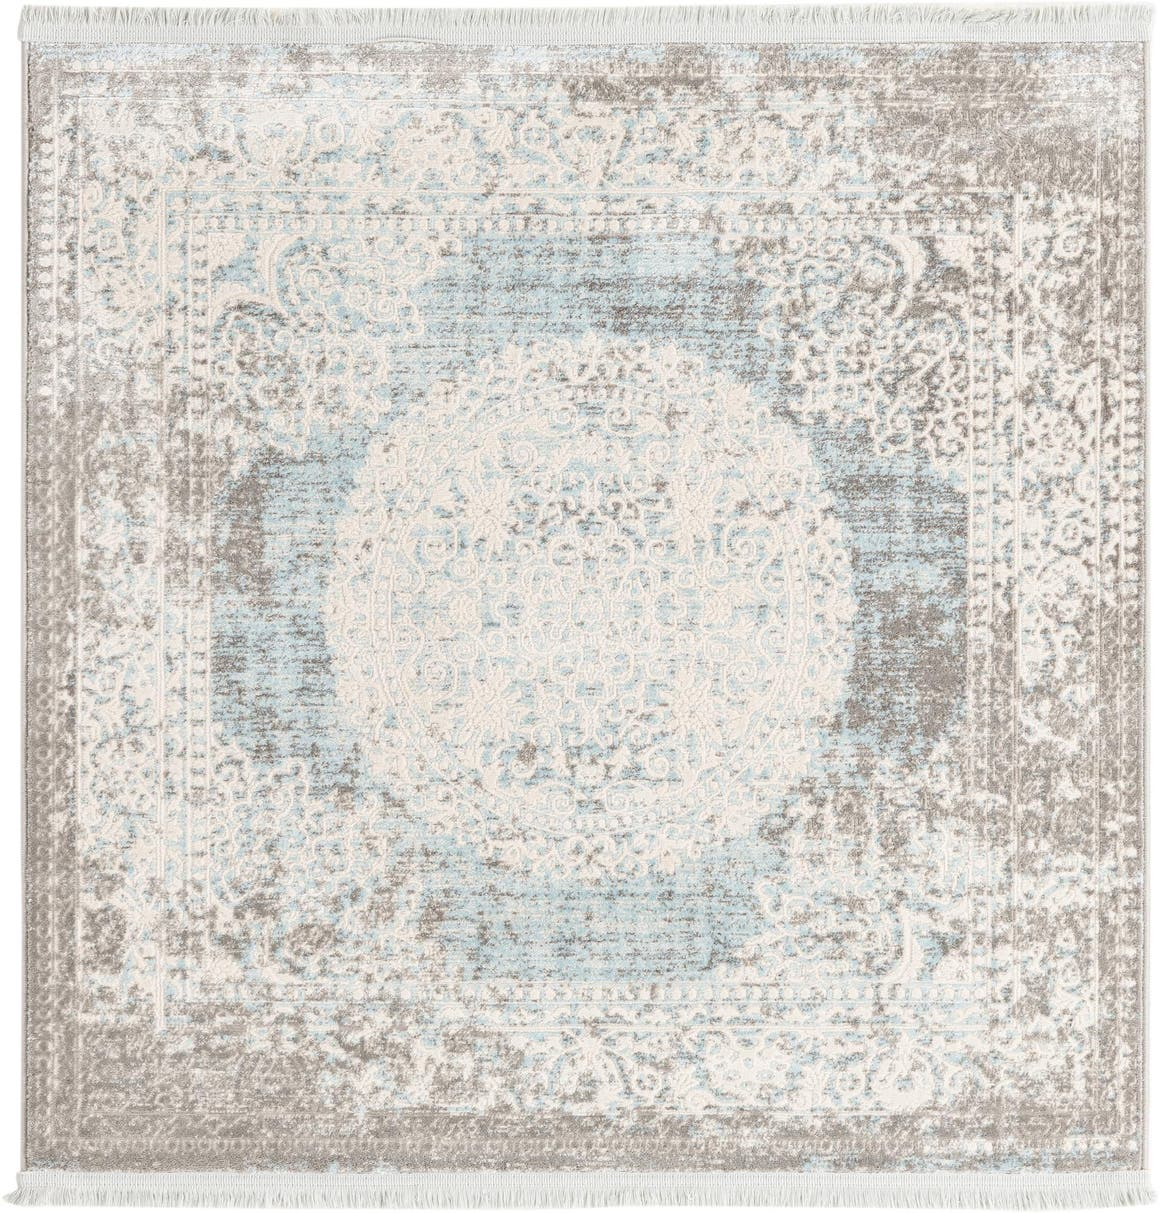 4' x 4' New Vintage Square Rug main image